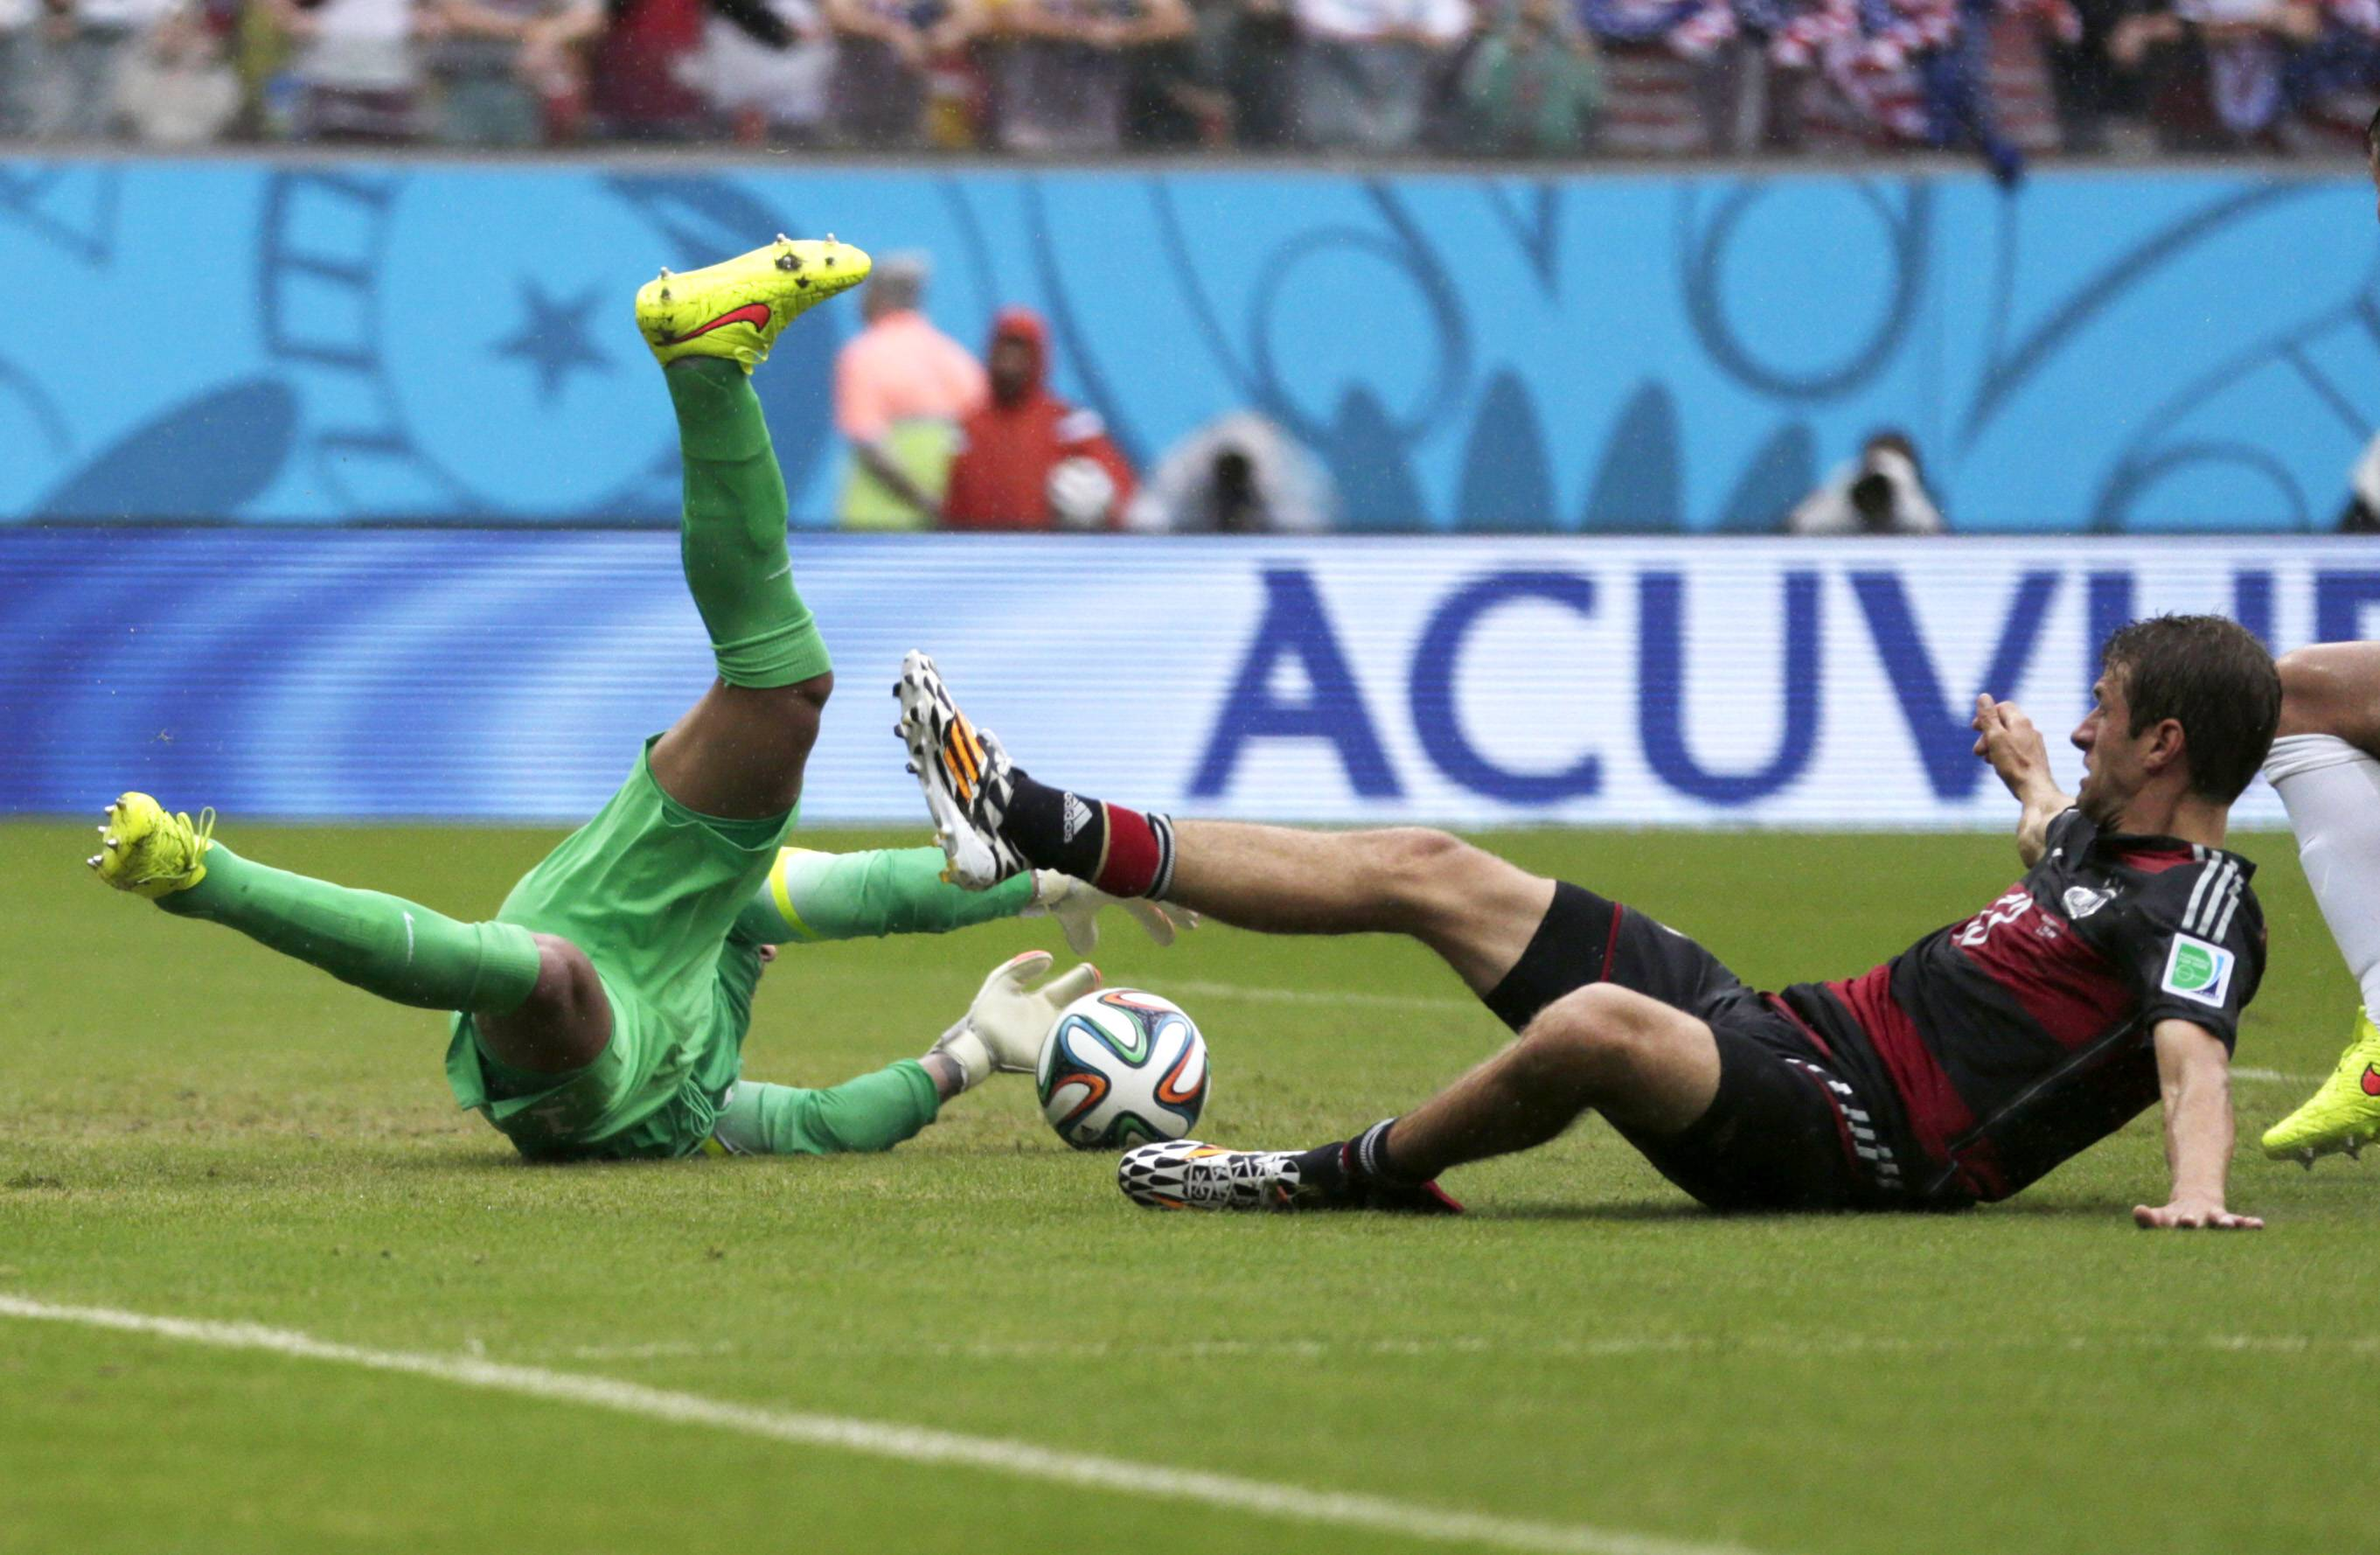 United States' goalkeeper Tim Howard goes down to make a save on Germany's Thomas Mueller during the group G World Cup soccer match between the United States and Germany at the Arena Pernambuco in Recife, Brazil, Thursday, June 26, 2014.